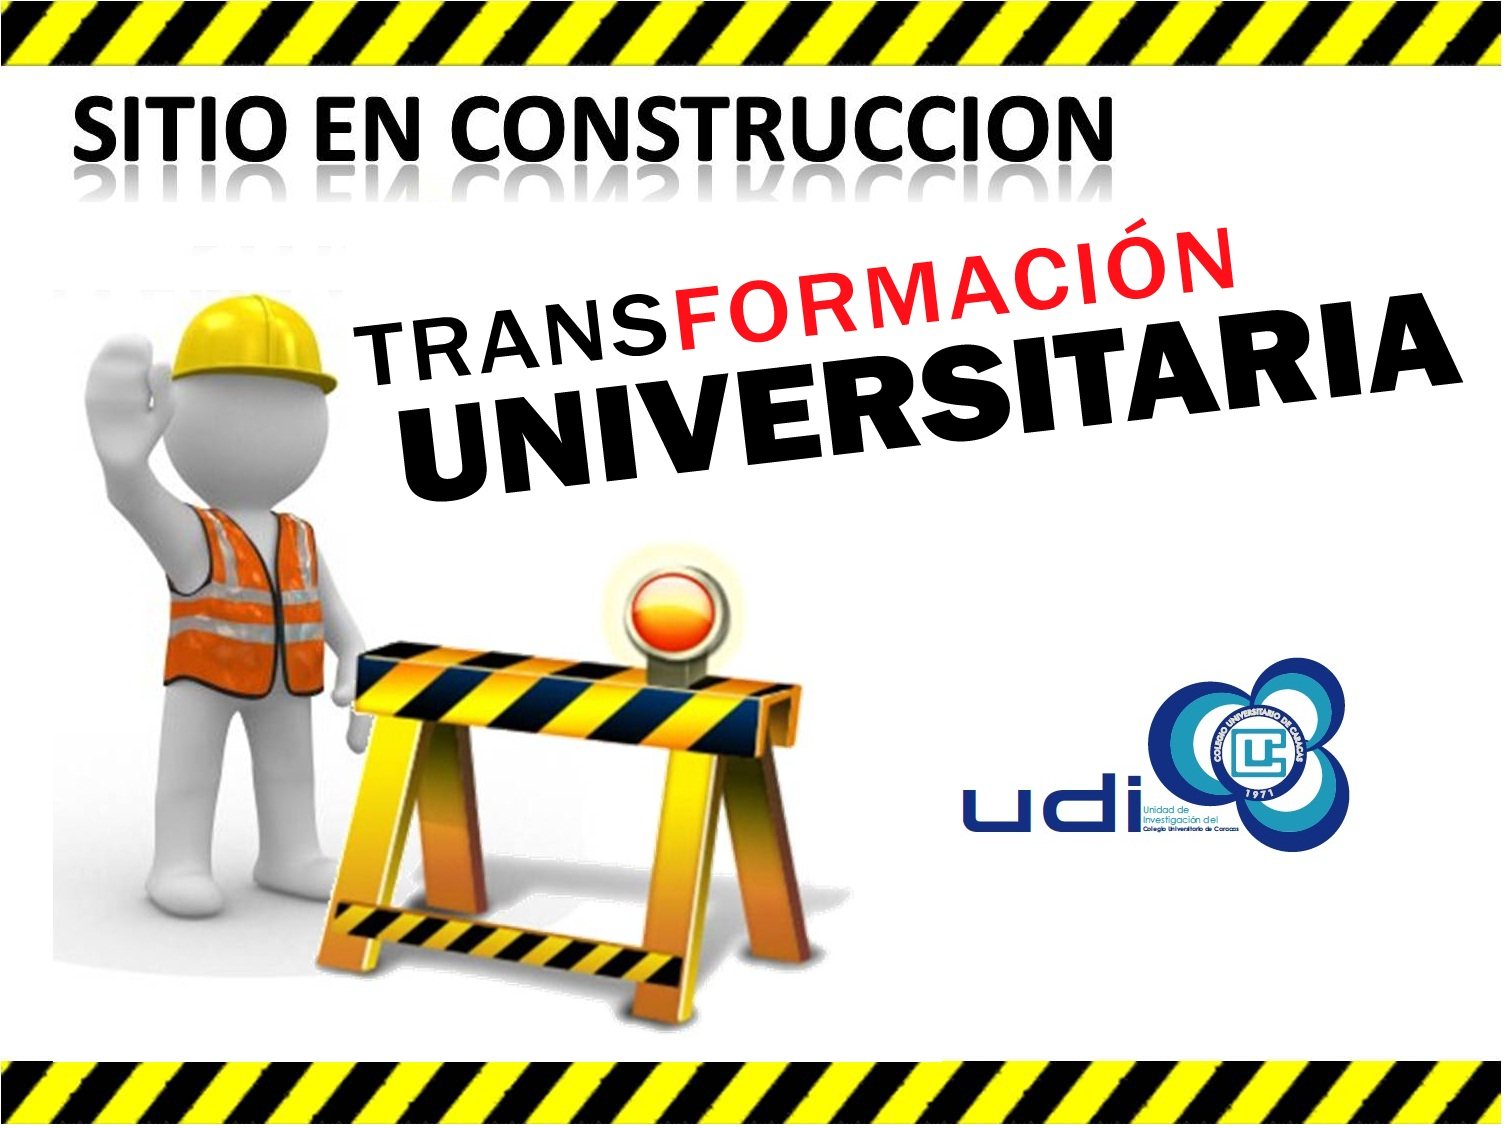 Estamos Ocupado Transformación Universitaria